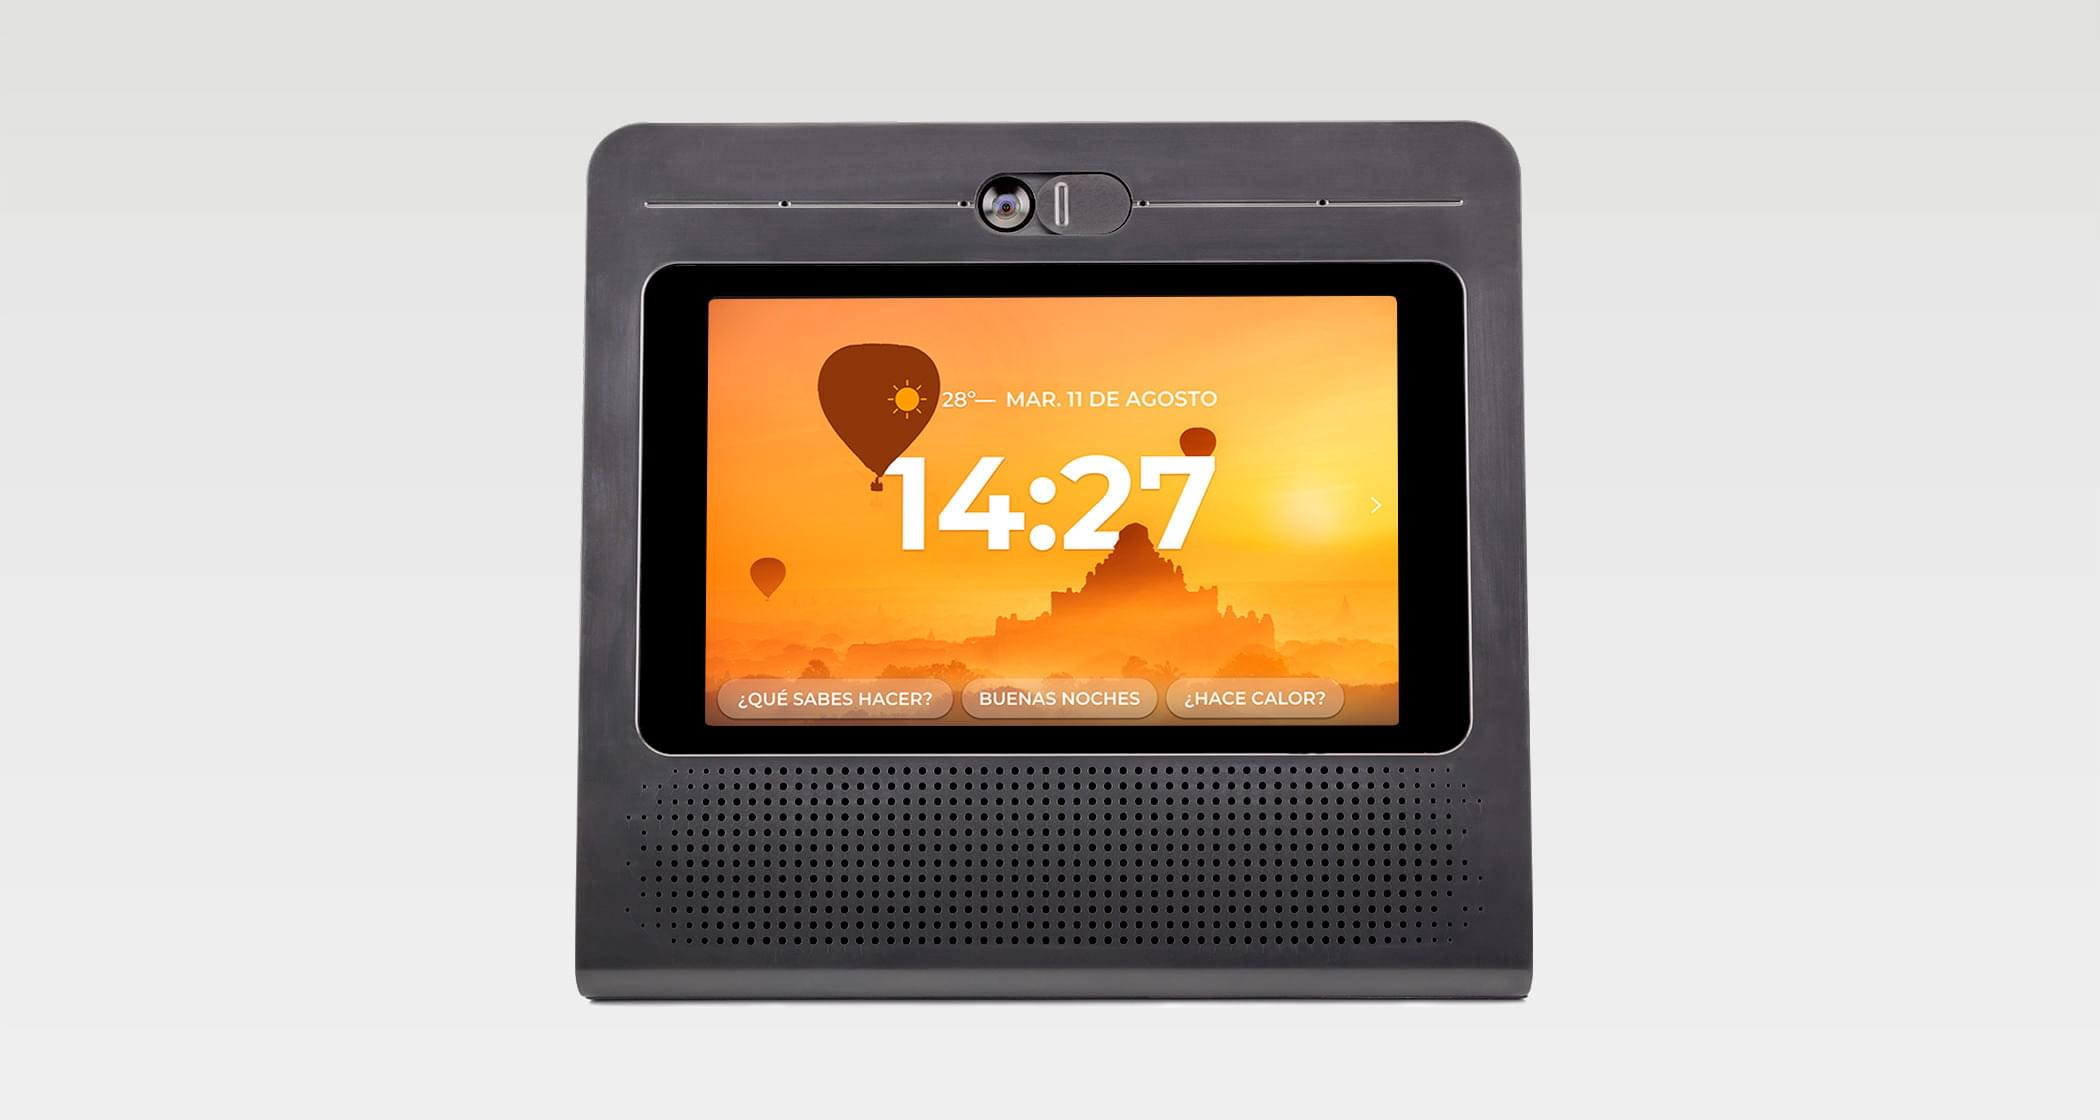 Large 8-inch LED touch screen.